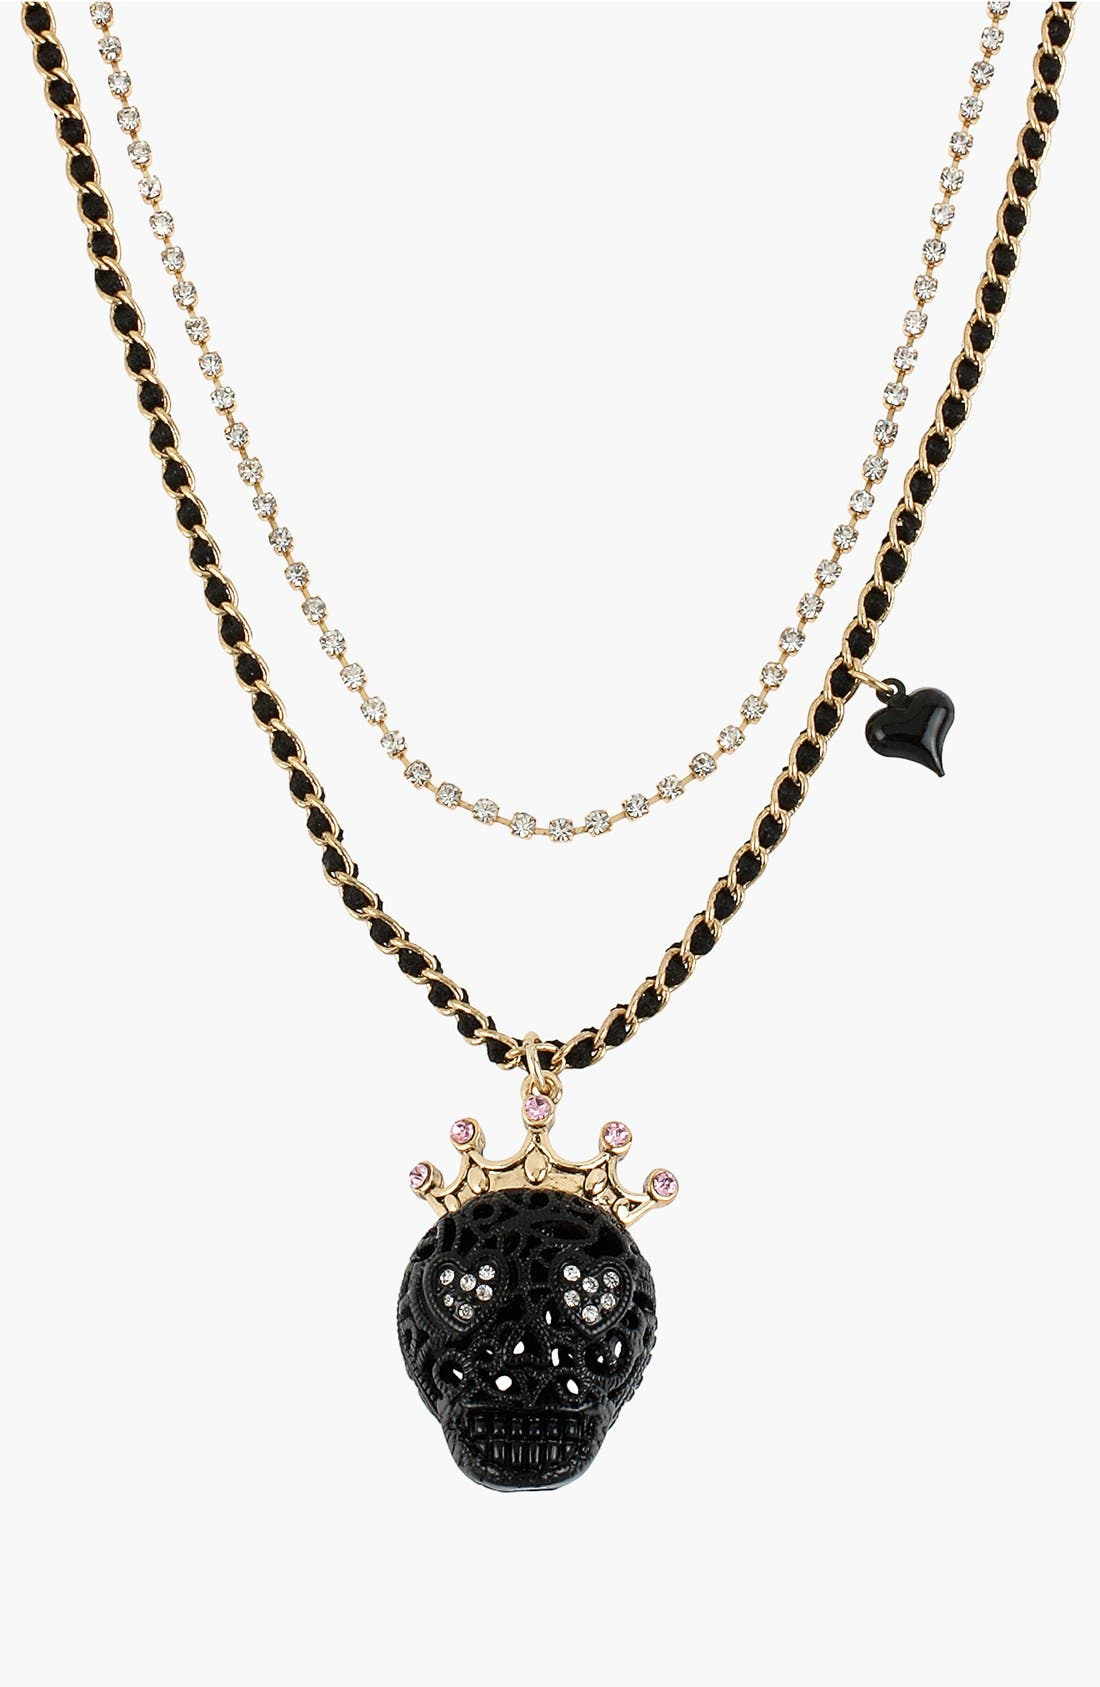 Alternate Image 1 Selected - Betsey Johnson 'Black Lace Skulls' Multistrand Necklace